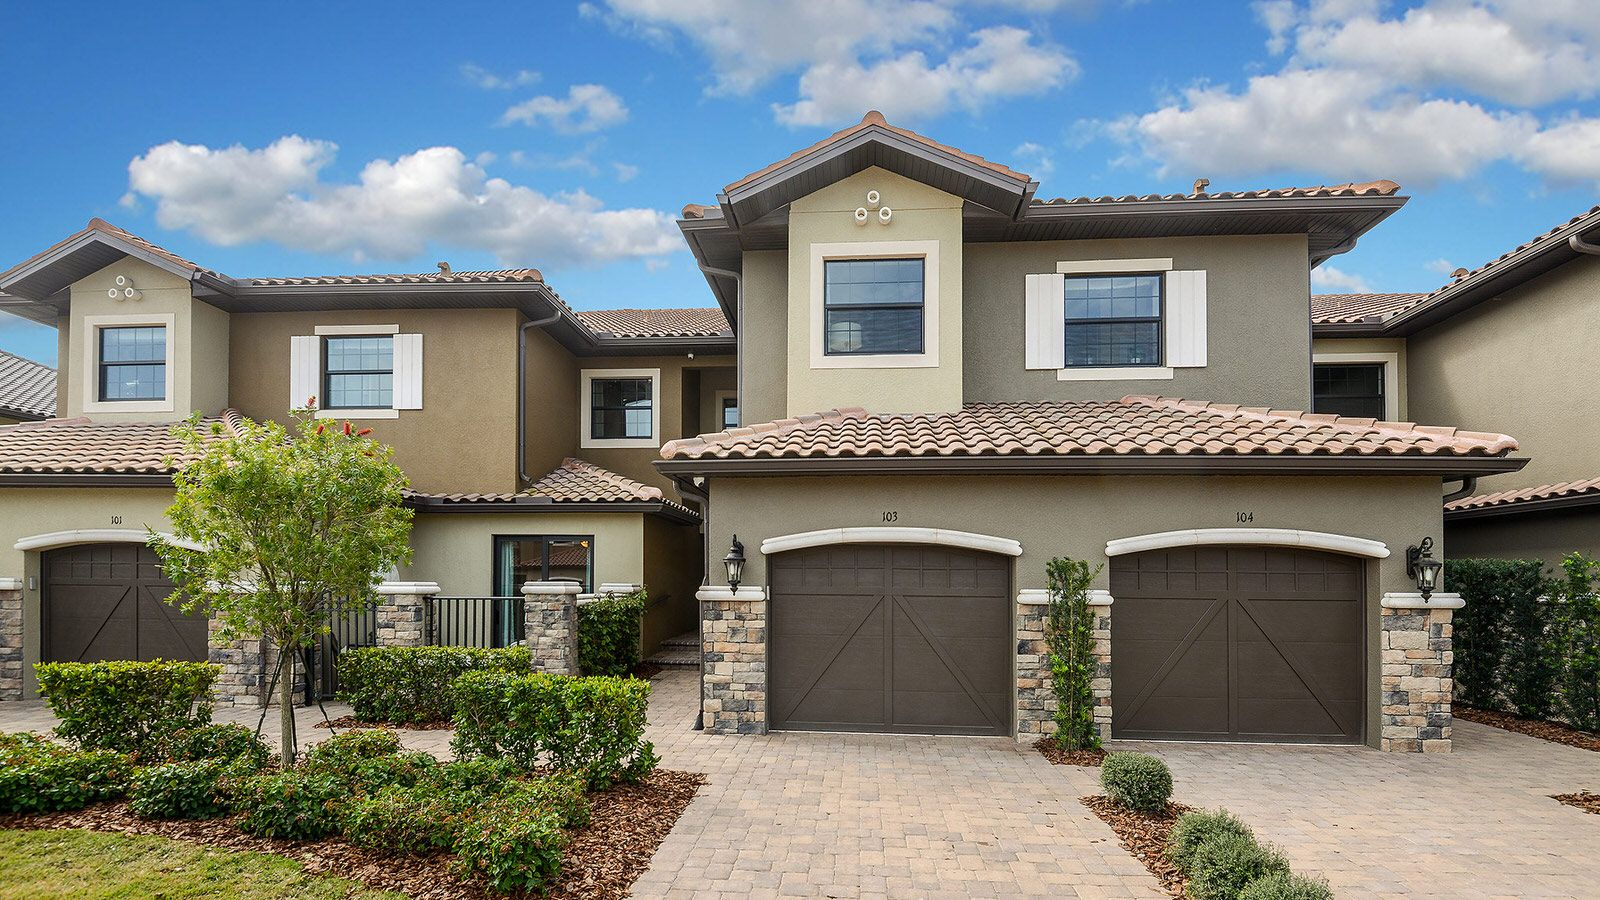 lakewood-ranch-bellisimo-4300-16x9